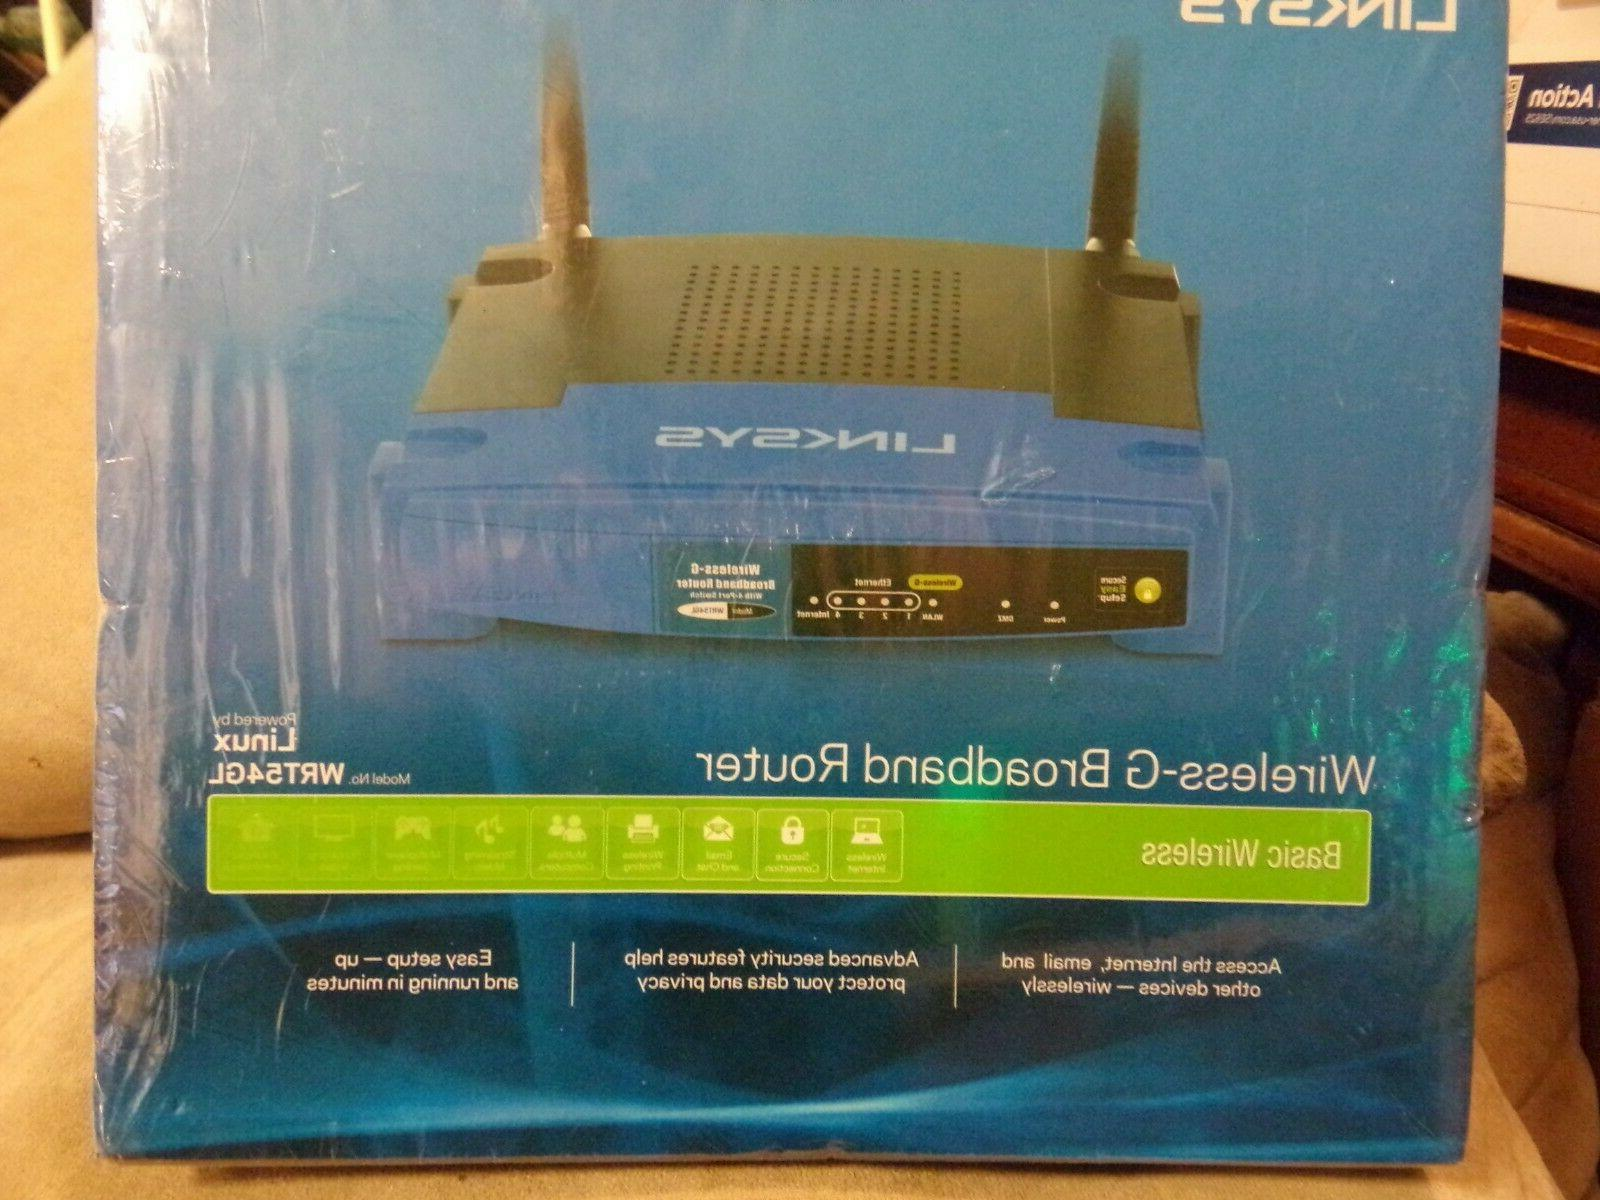 New Linksys Linux 2.4Ghz Wifi Broadband